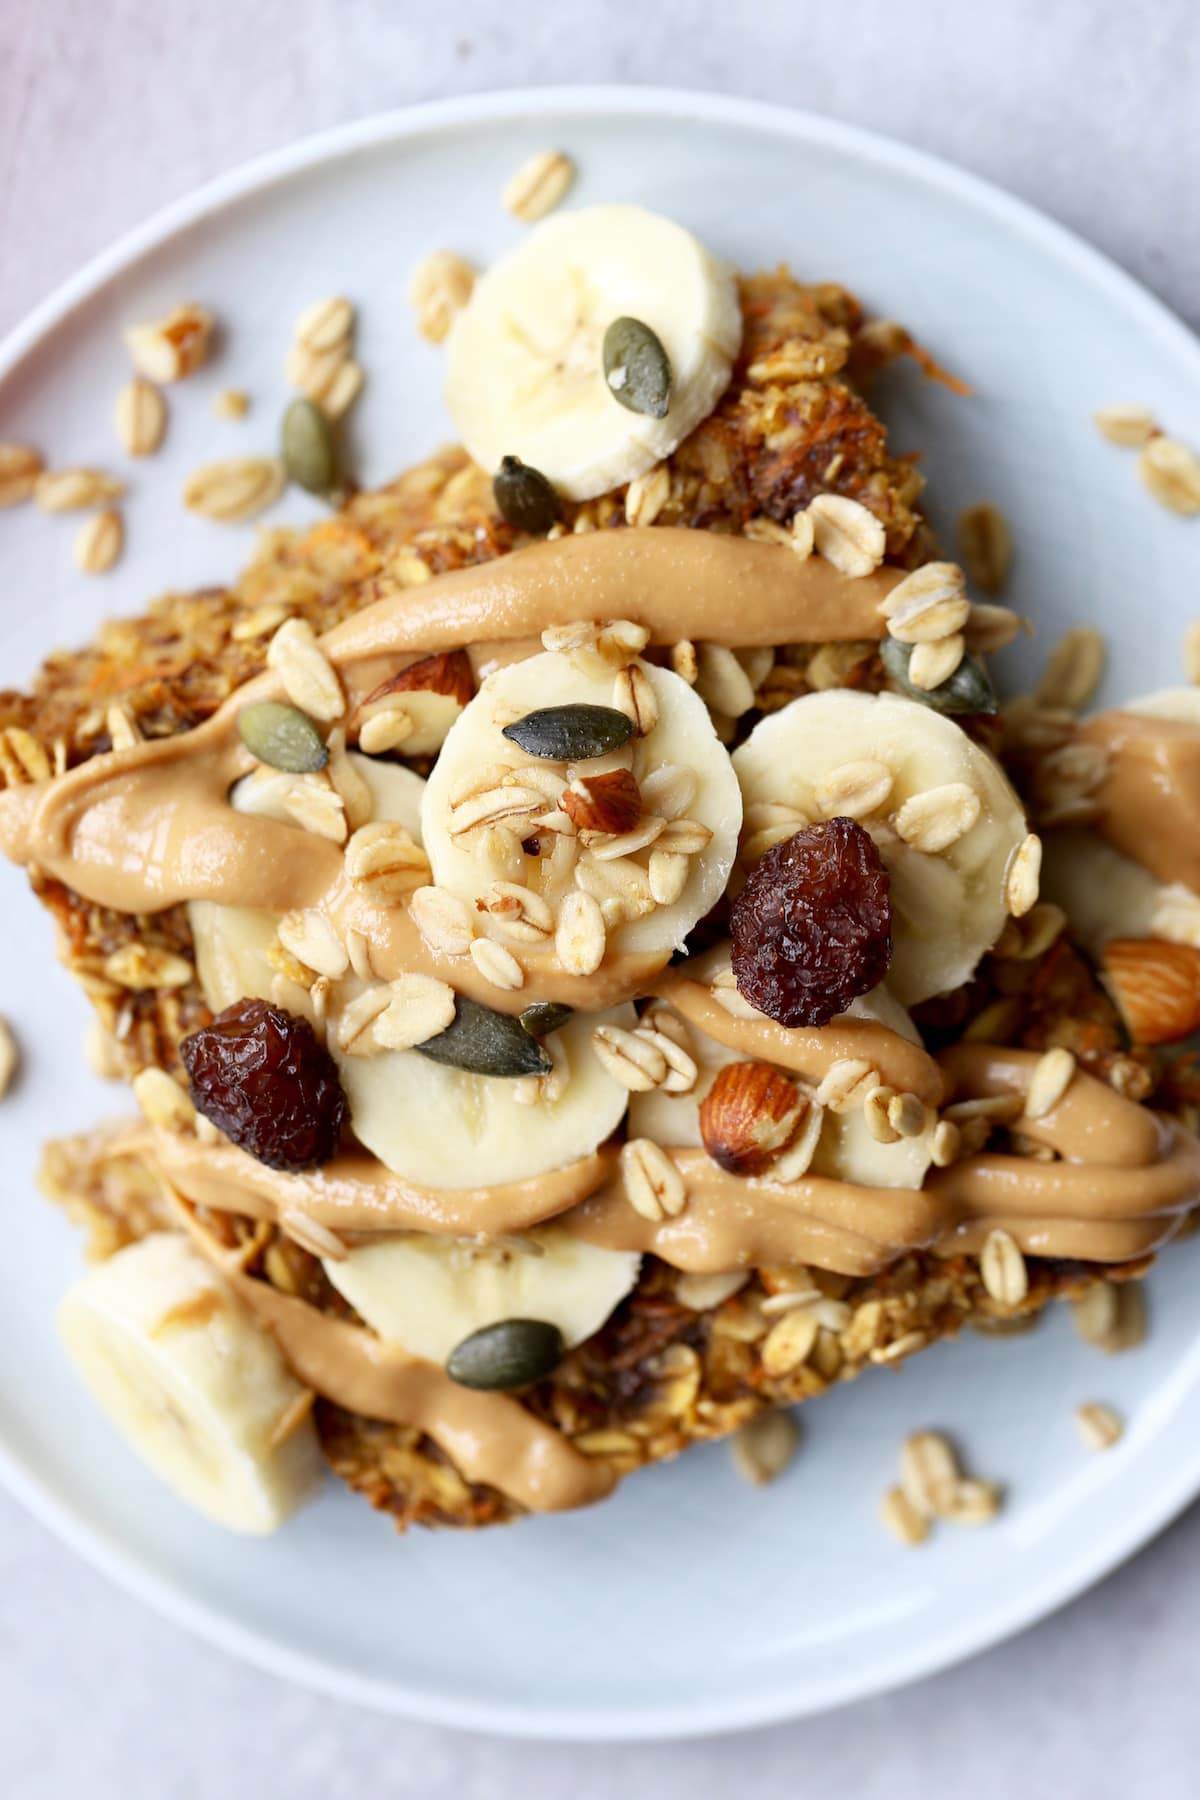 carrot caked baked oatmeal topped with peanut butter and banana